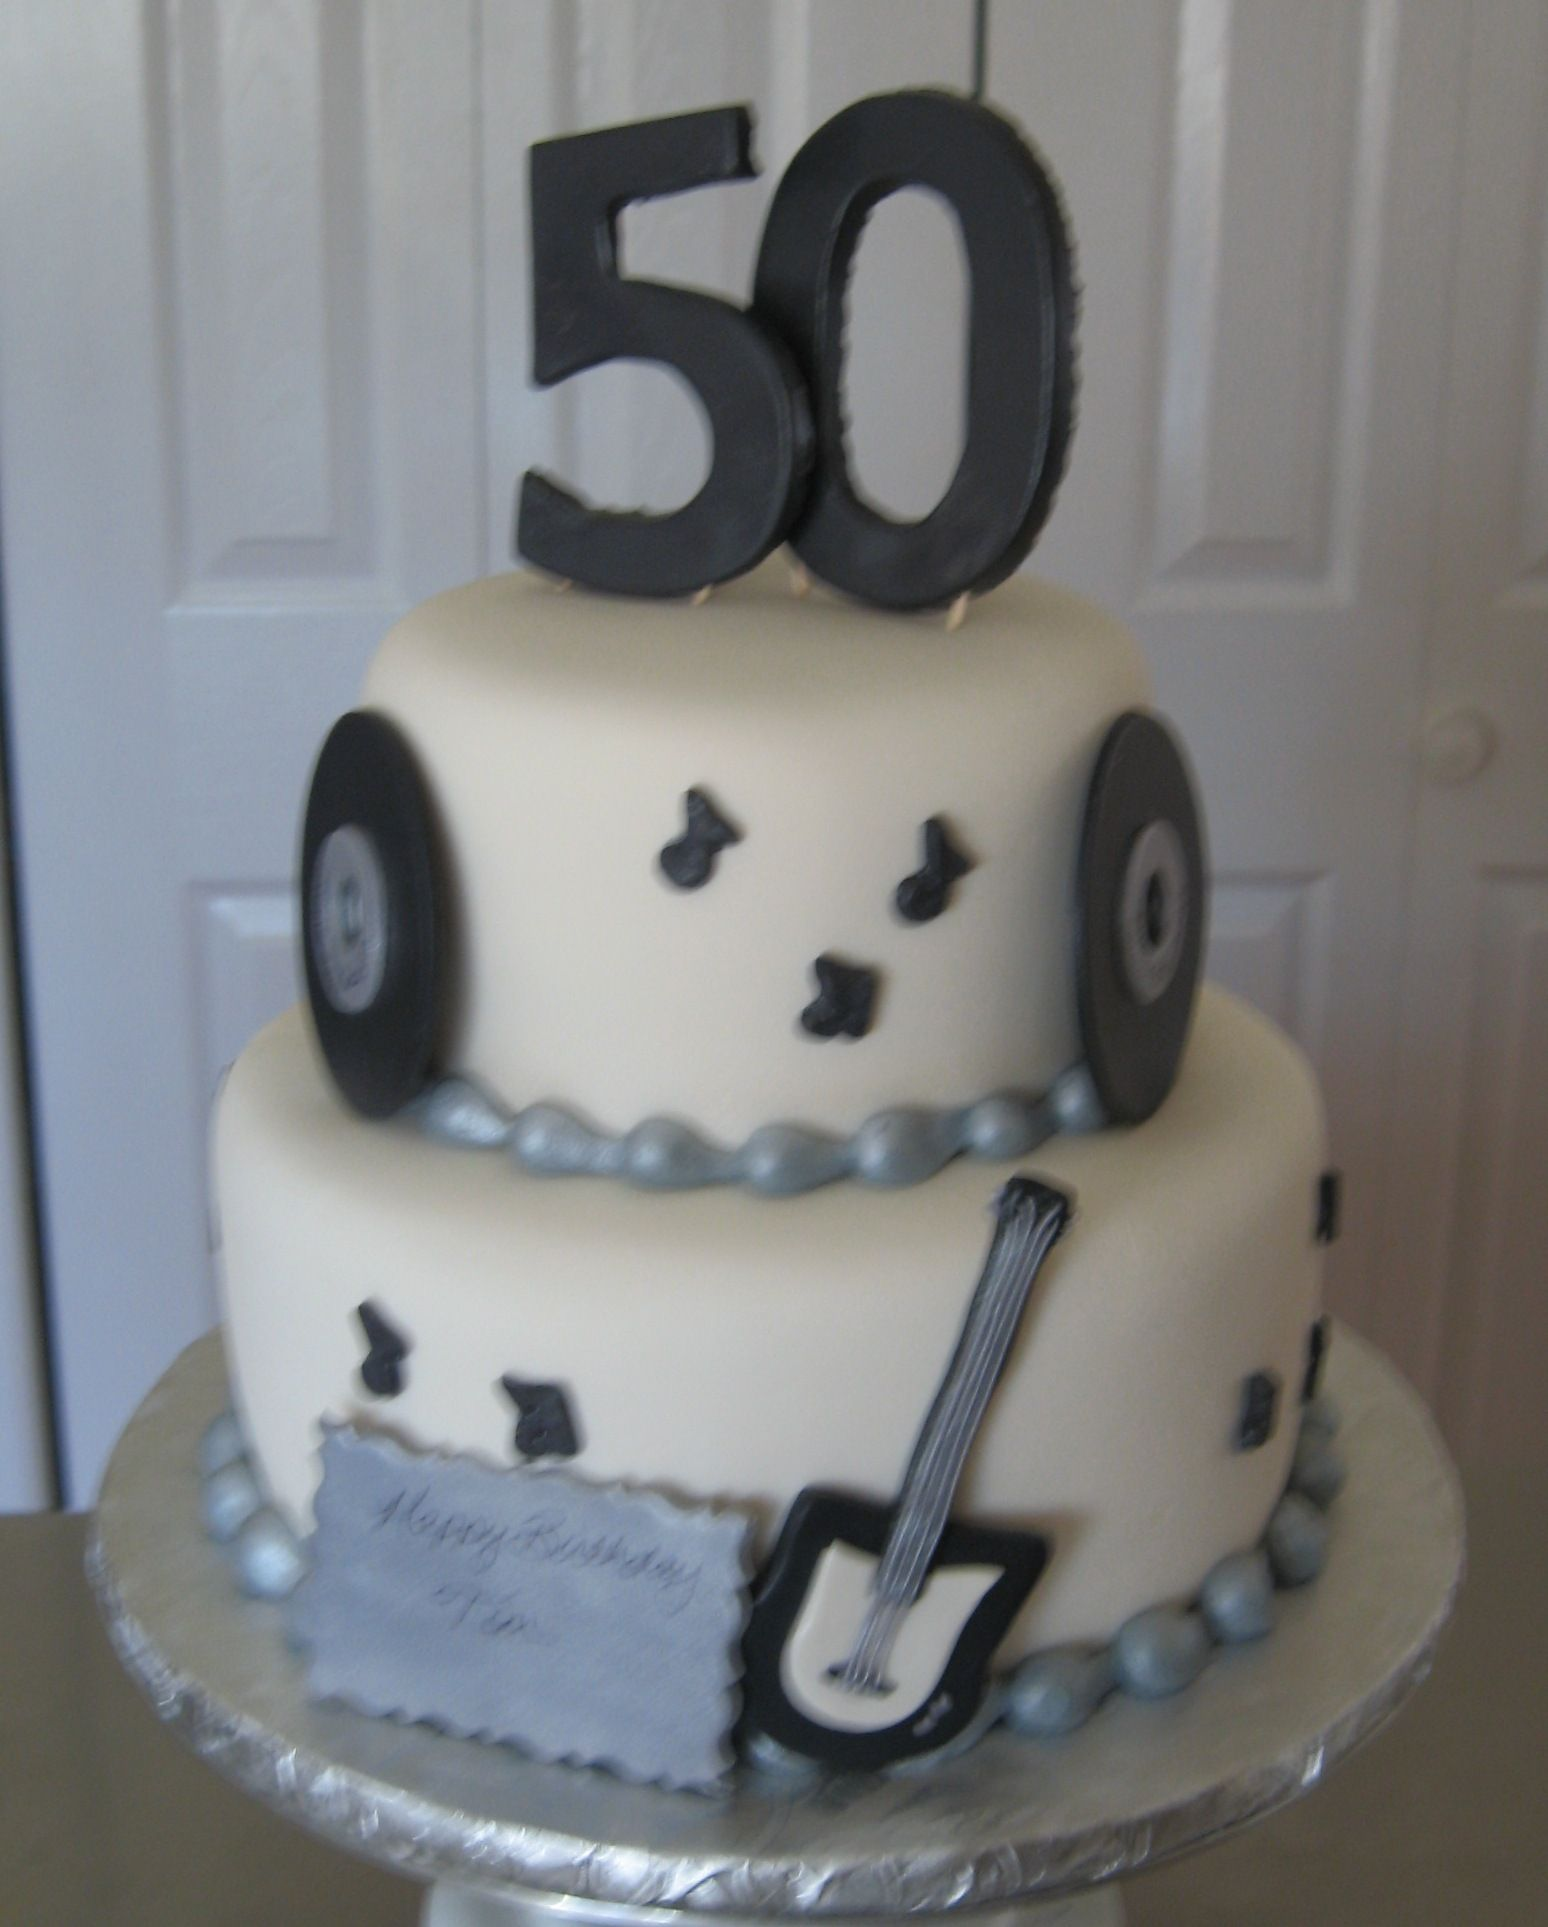 Music Man Cake Th Birthday Cake For A Guy Named Tom Who Loved - Birthday cake for a guy